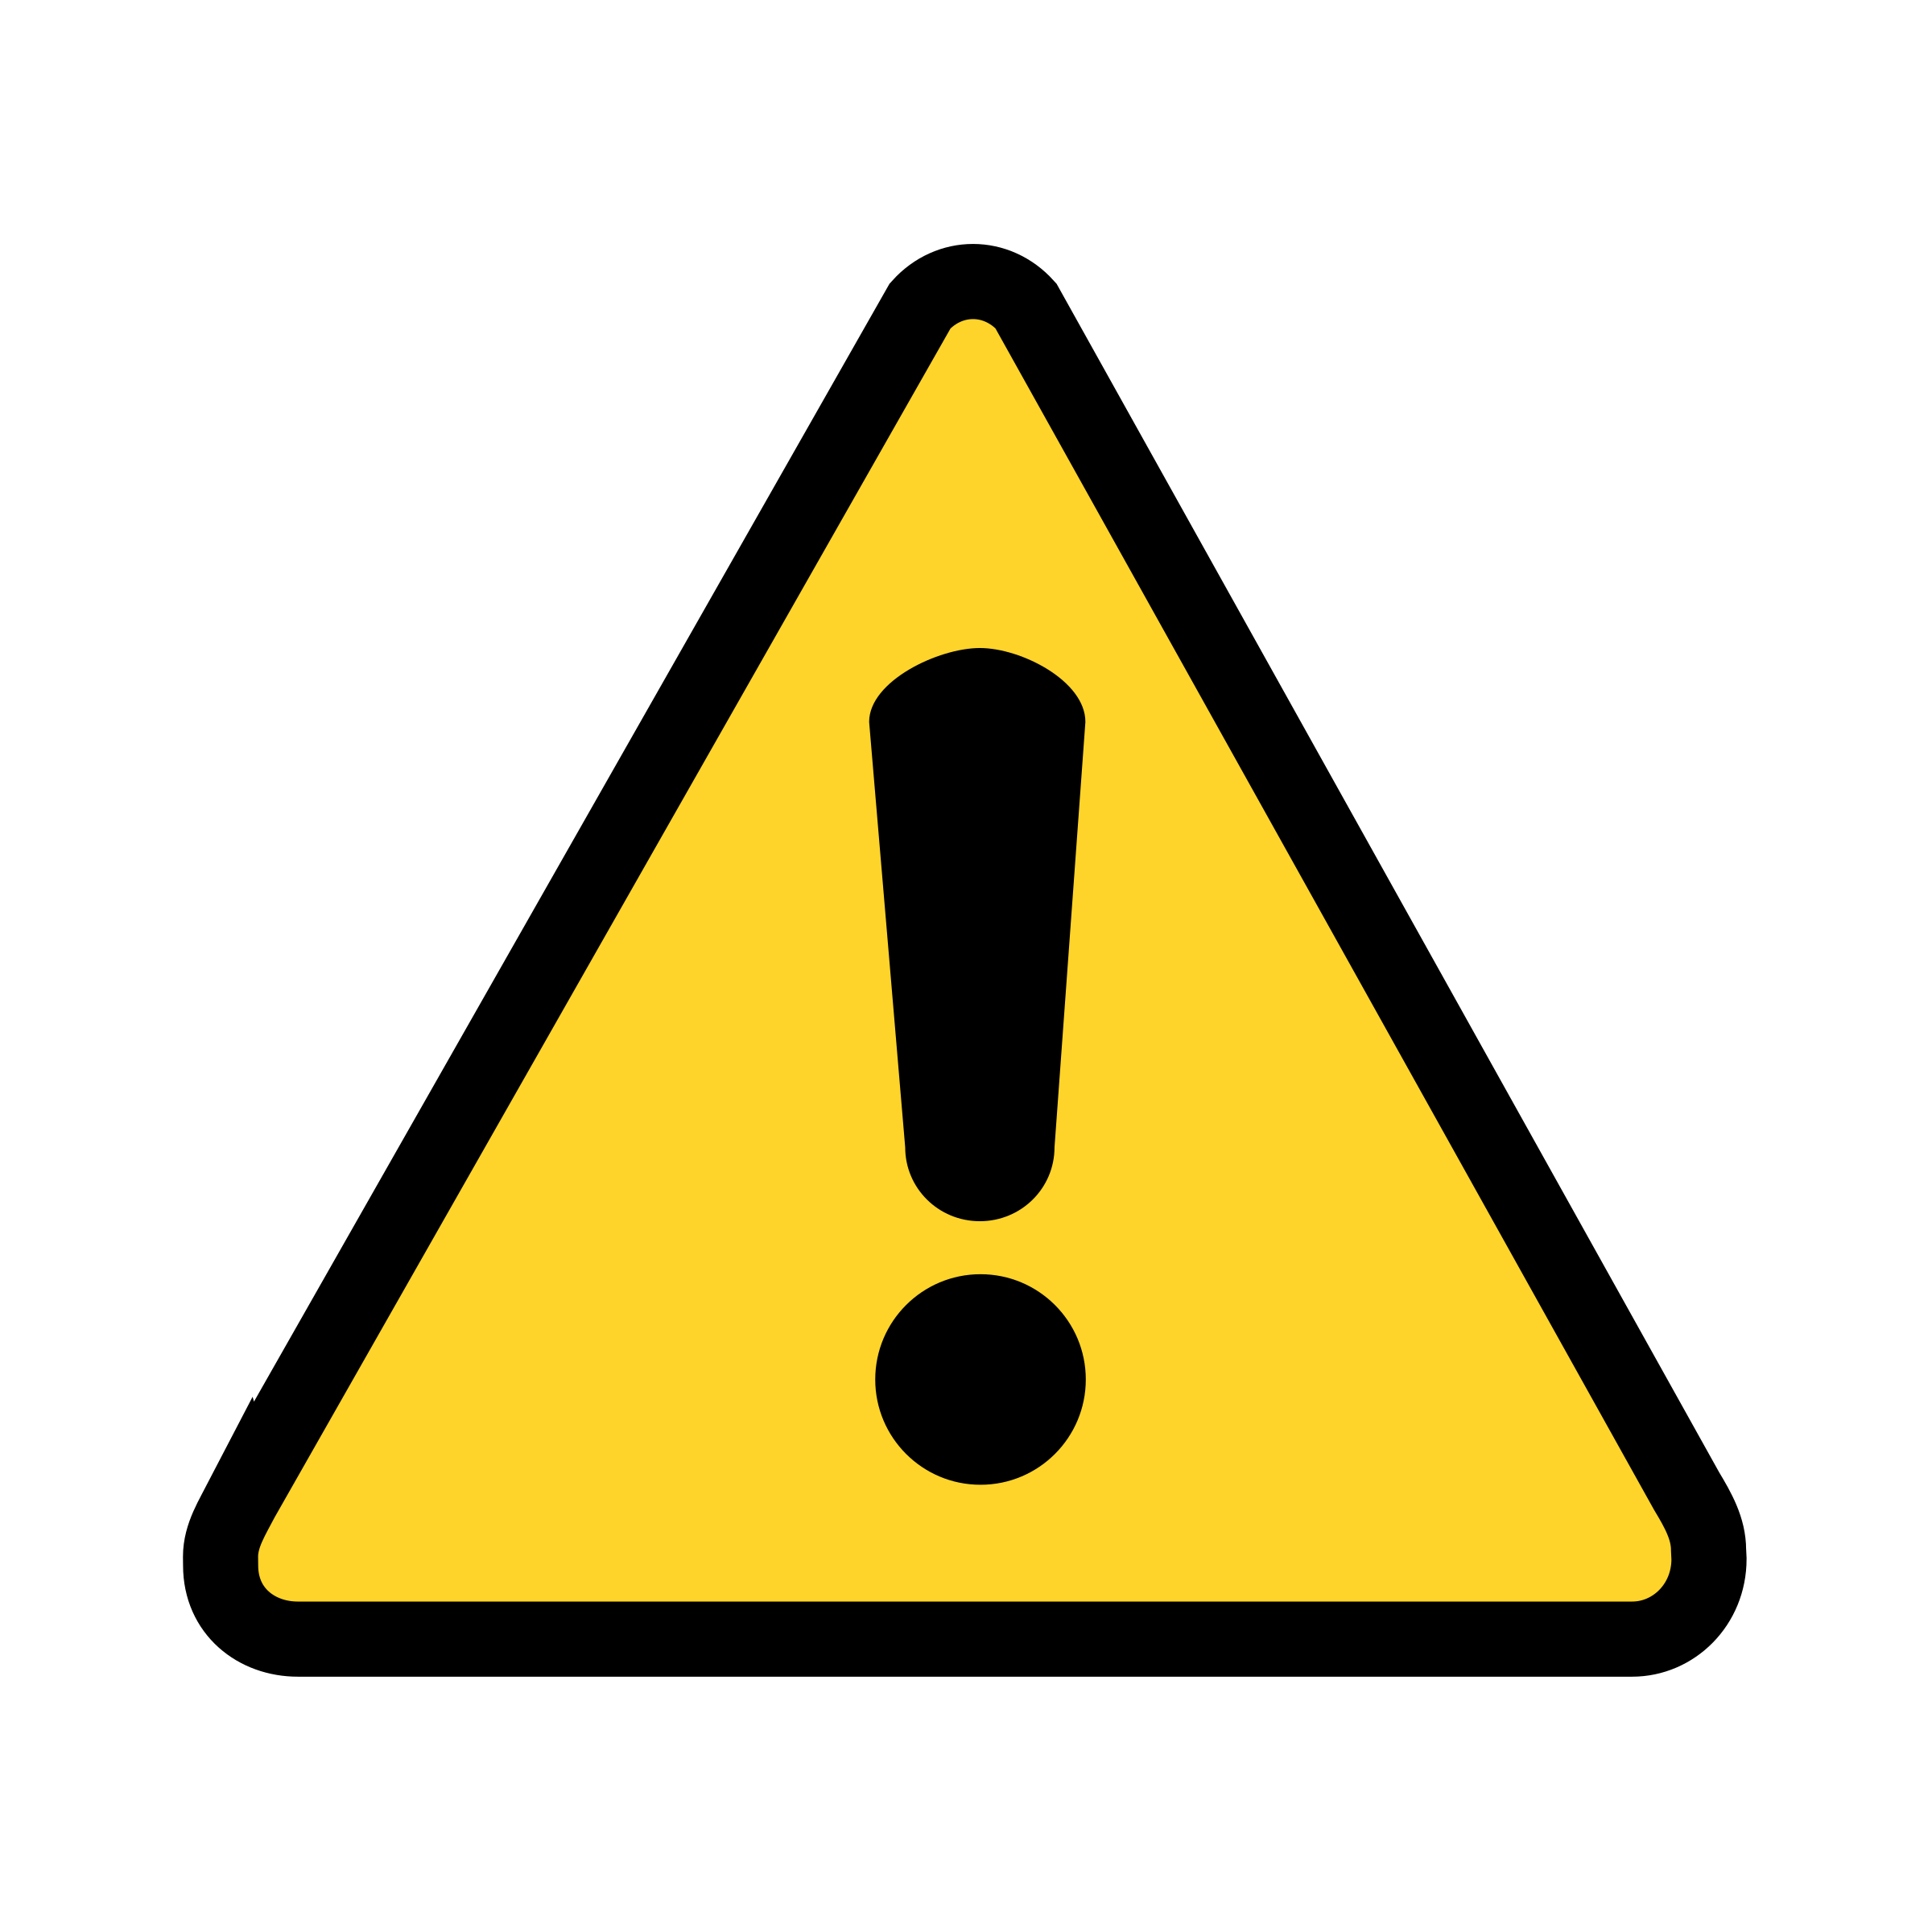 A safety warning icon - Yellow triangle with a black exclamation mark in the middle.